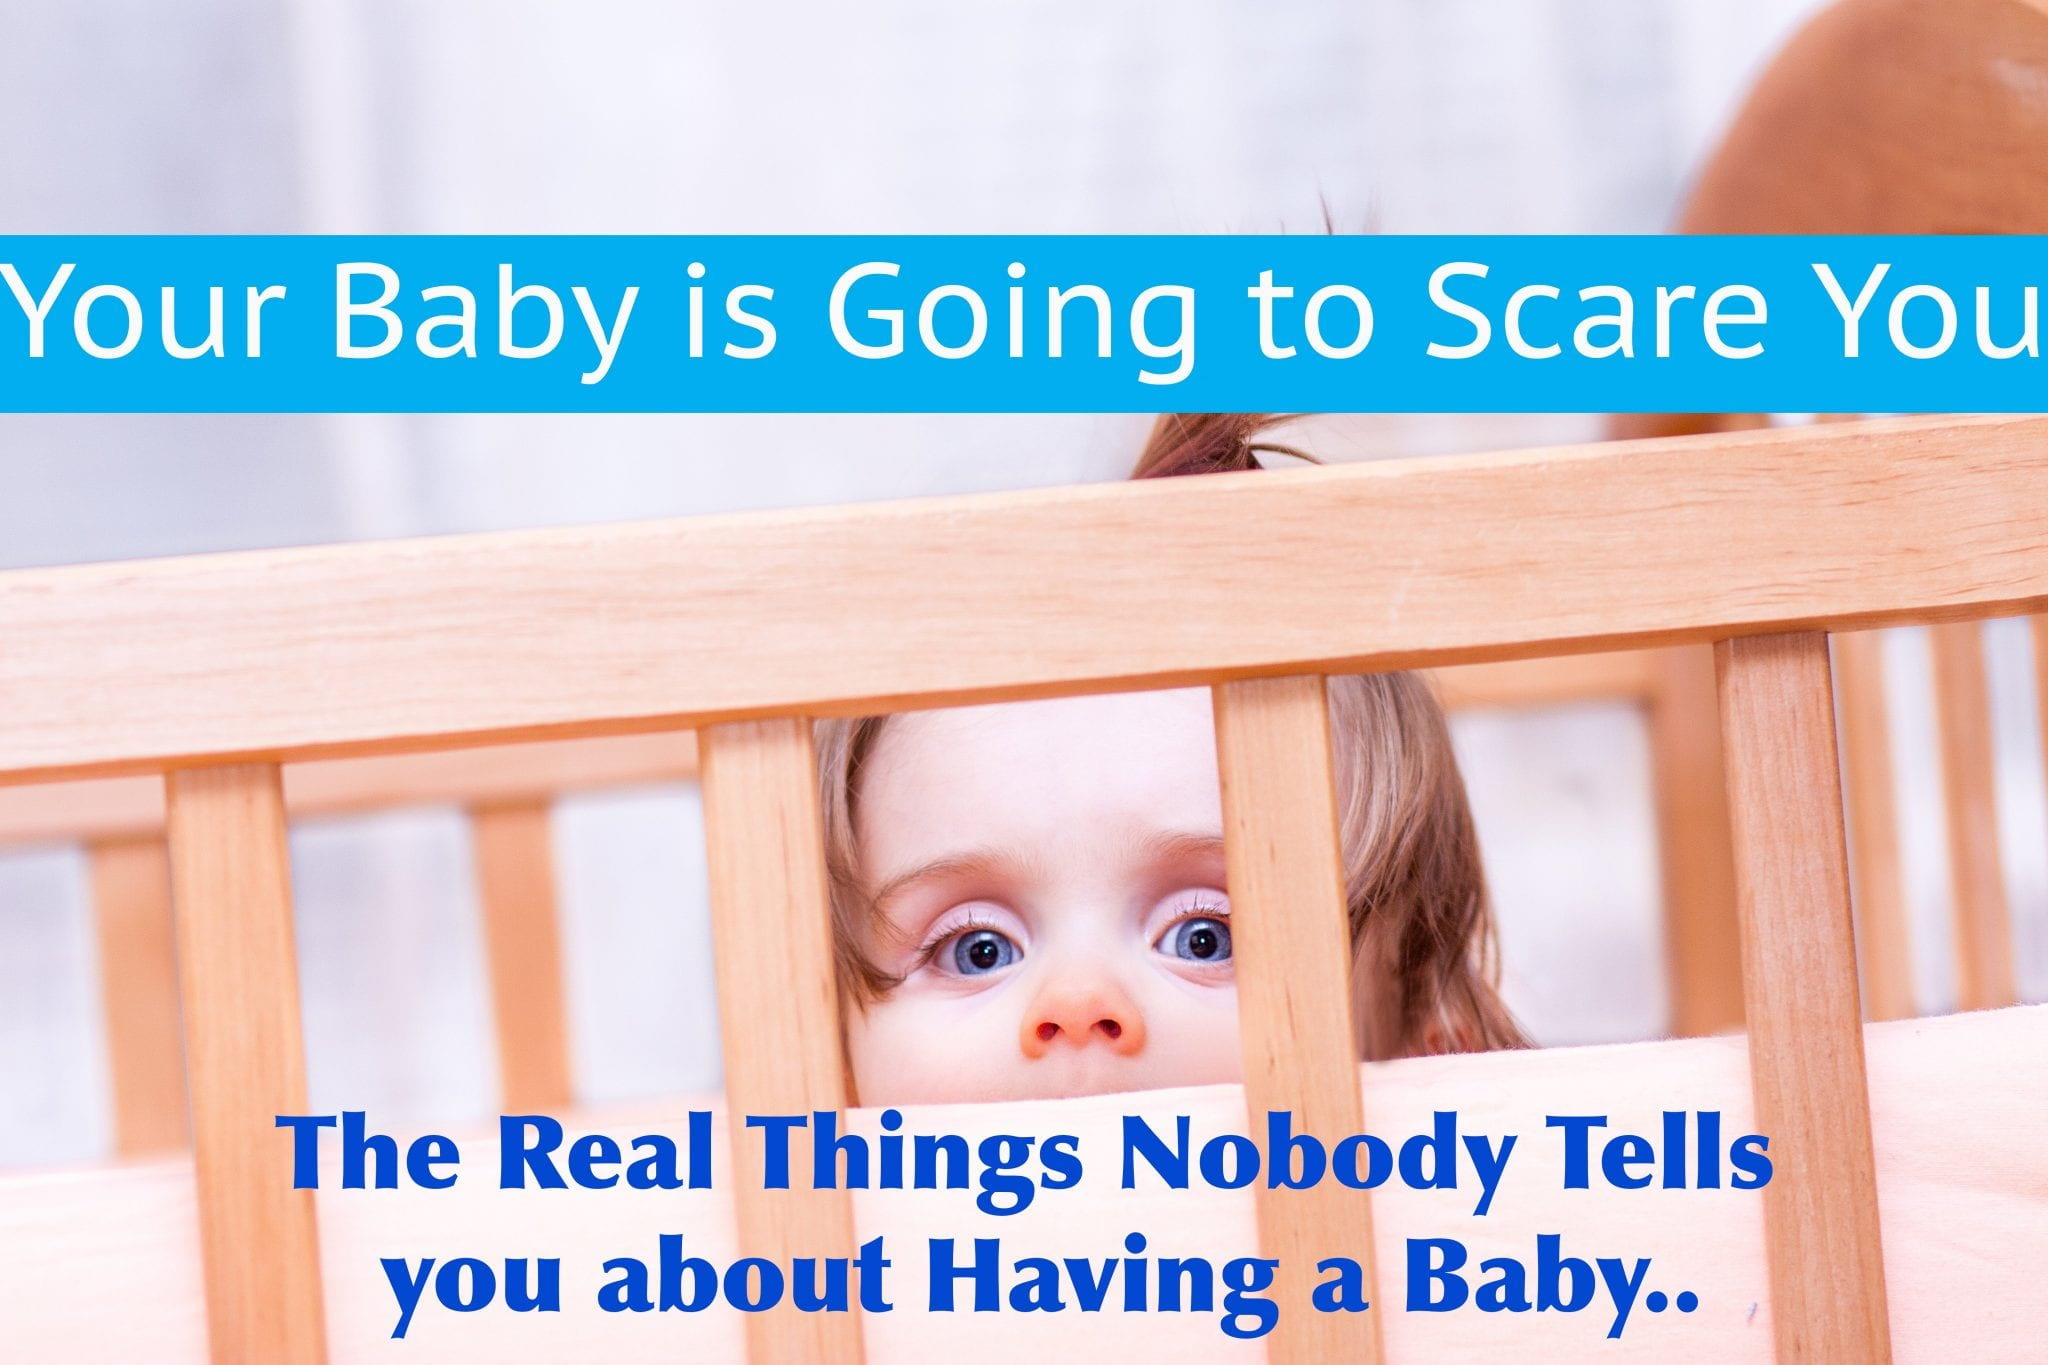 The Real Things Nobody Tells you about Having a Baby | Good Life of a Housewife